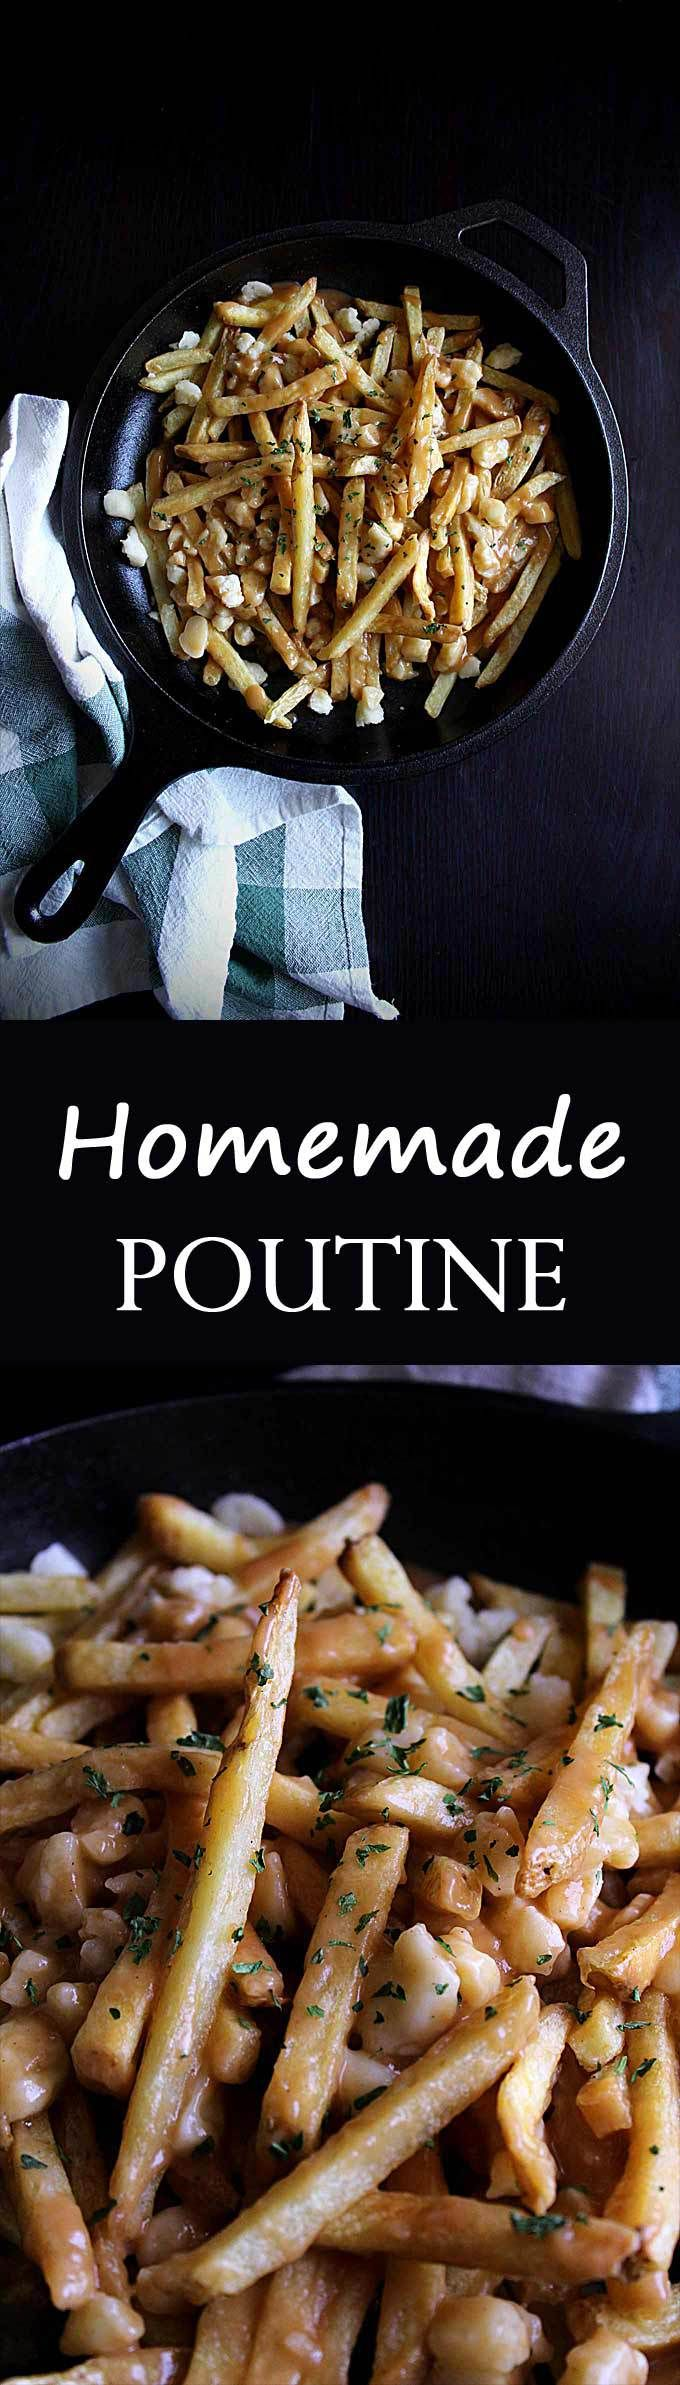 Homemade Poutine Gravy | Easy Poutine | Beef & Chicken Poutine Gravy | Fries and Cheese Curds | How to Make Poutine